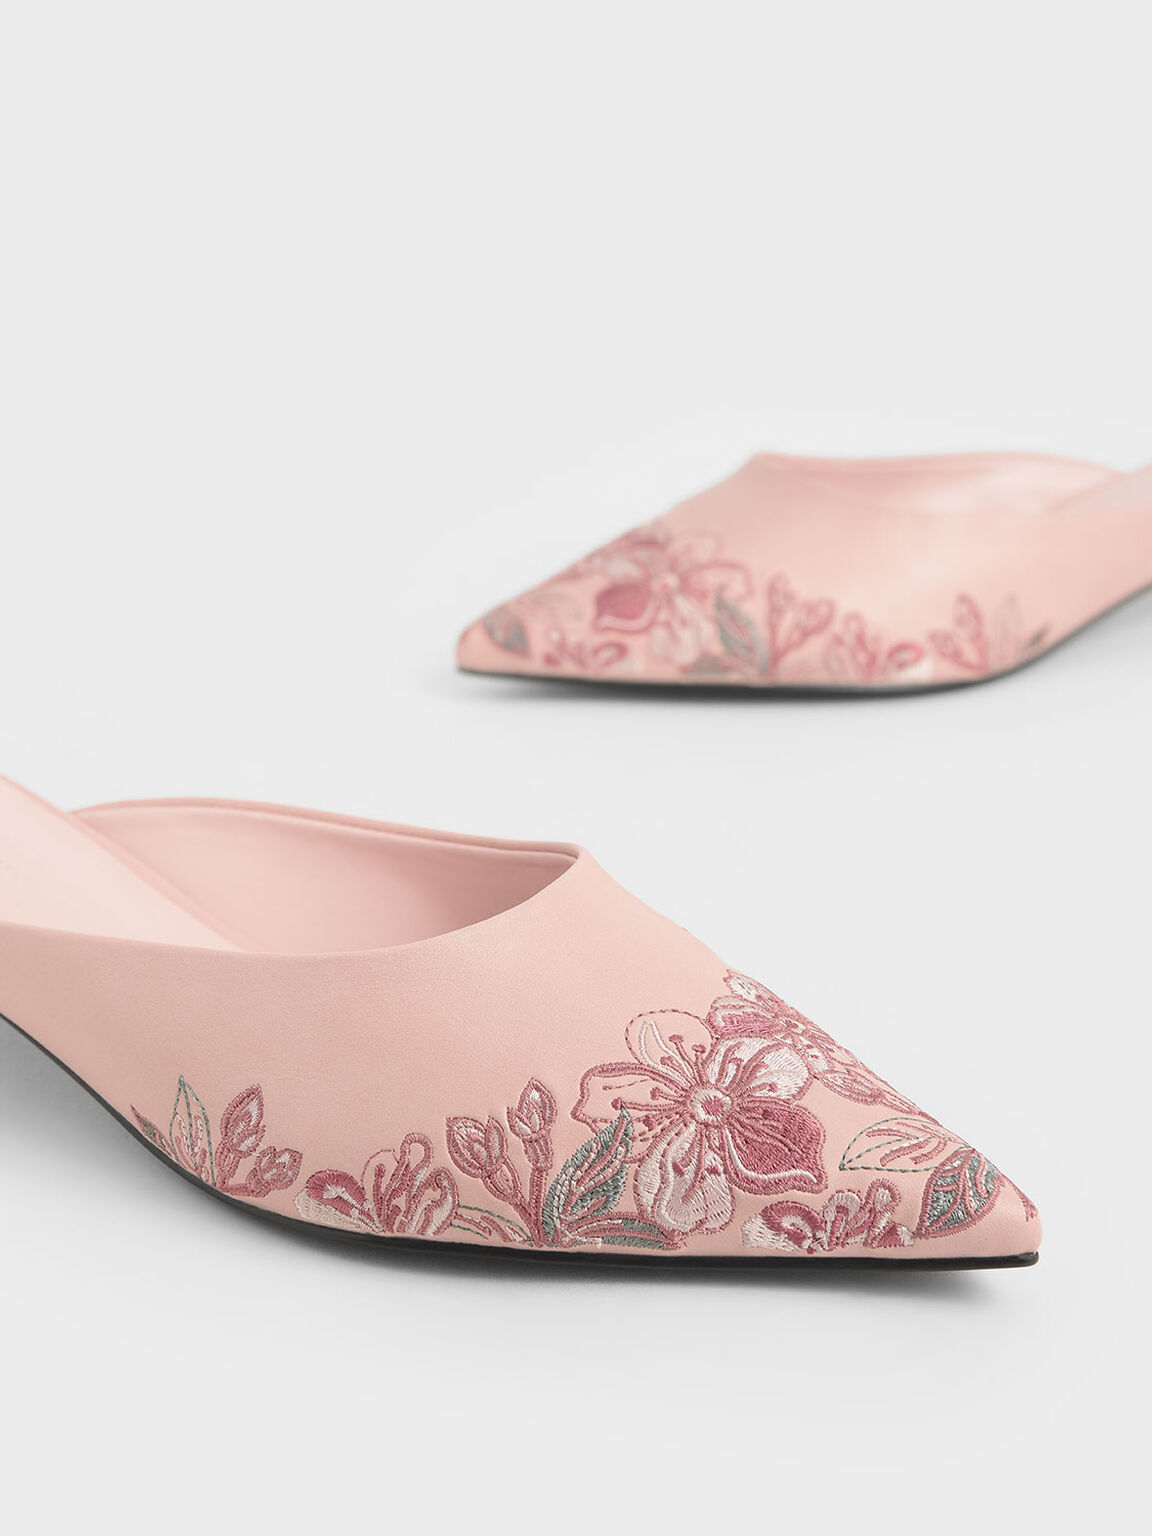 Embroidered Floral Mules, Pink, hi-res